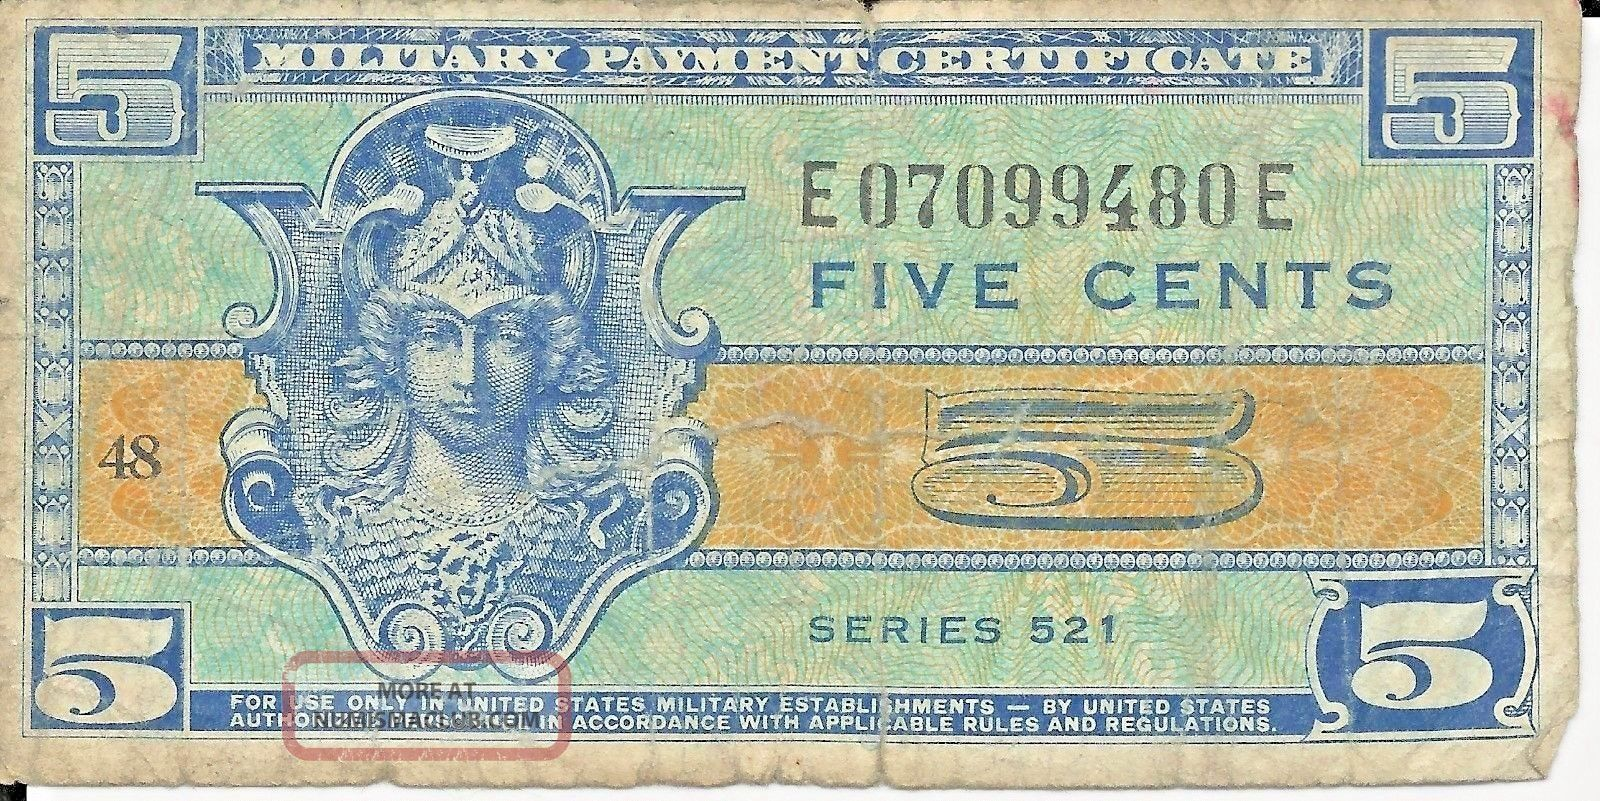 Mpc 1954 1958 Military Payment Certificate Mpc 5 Cents Series 521